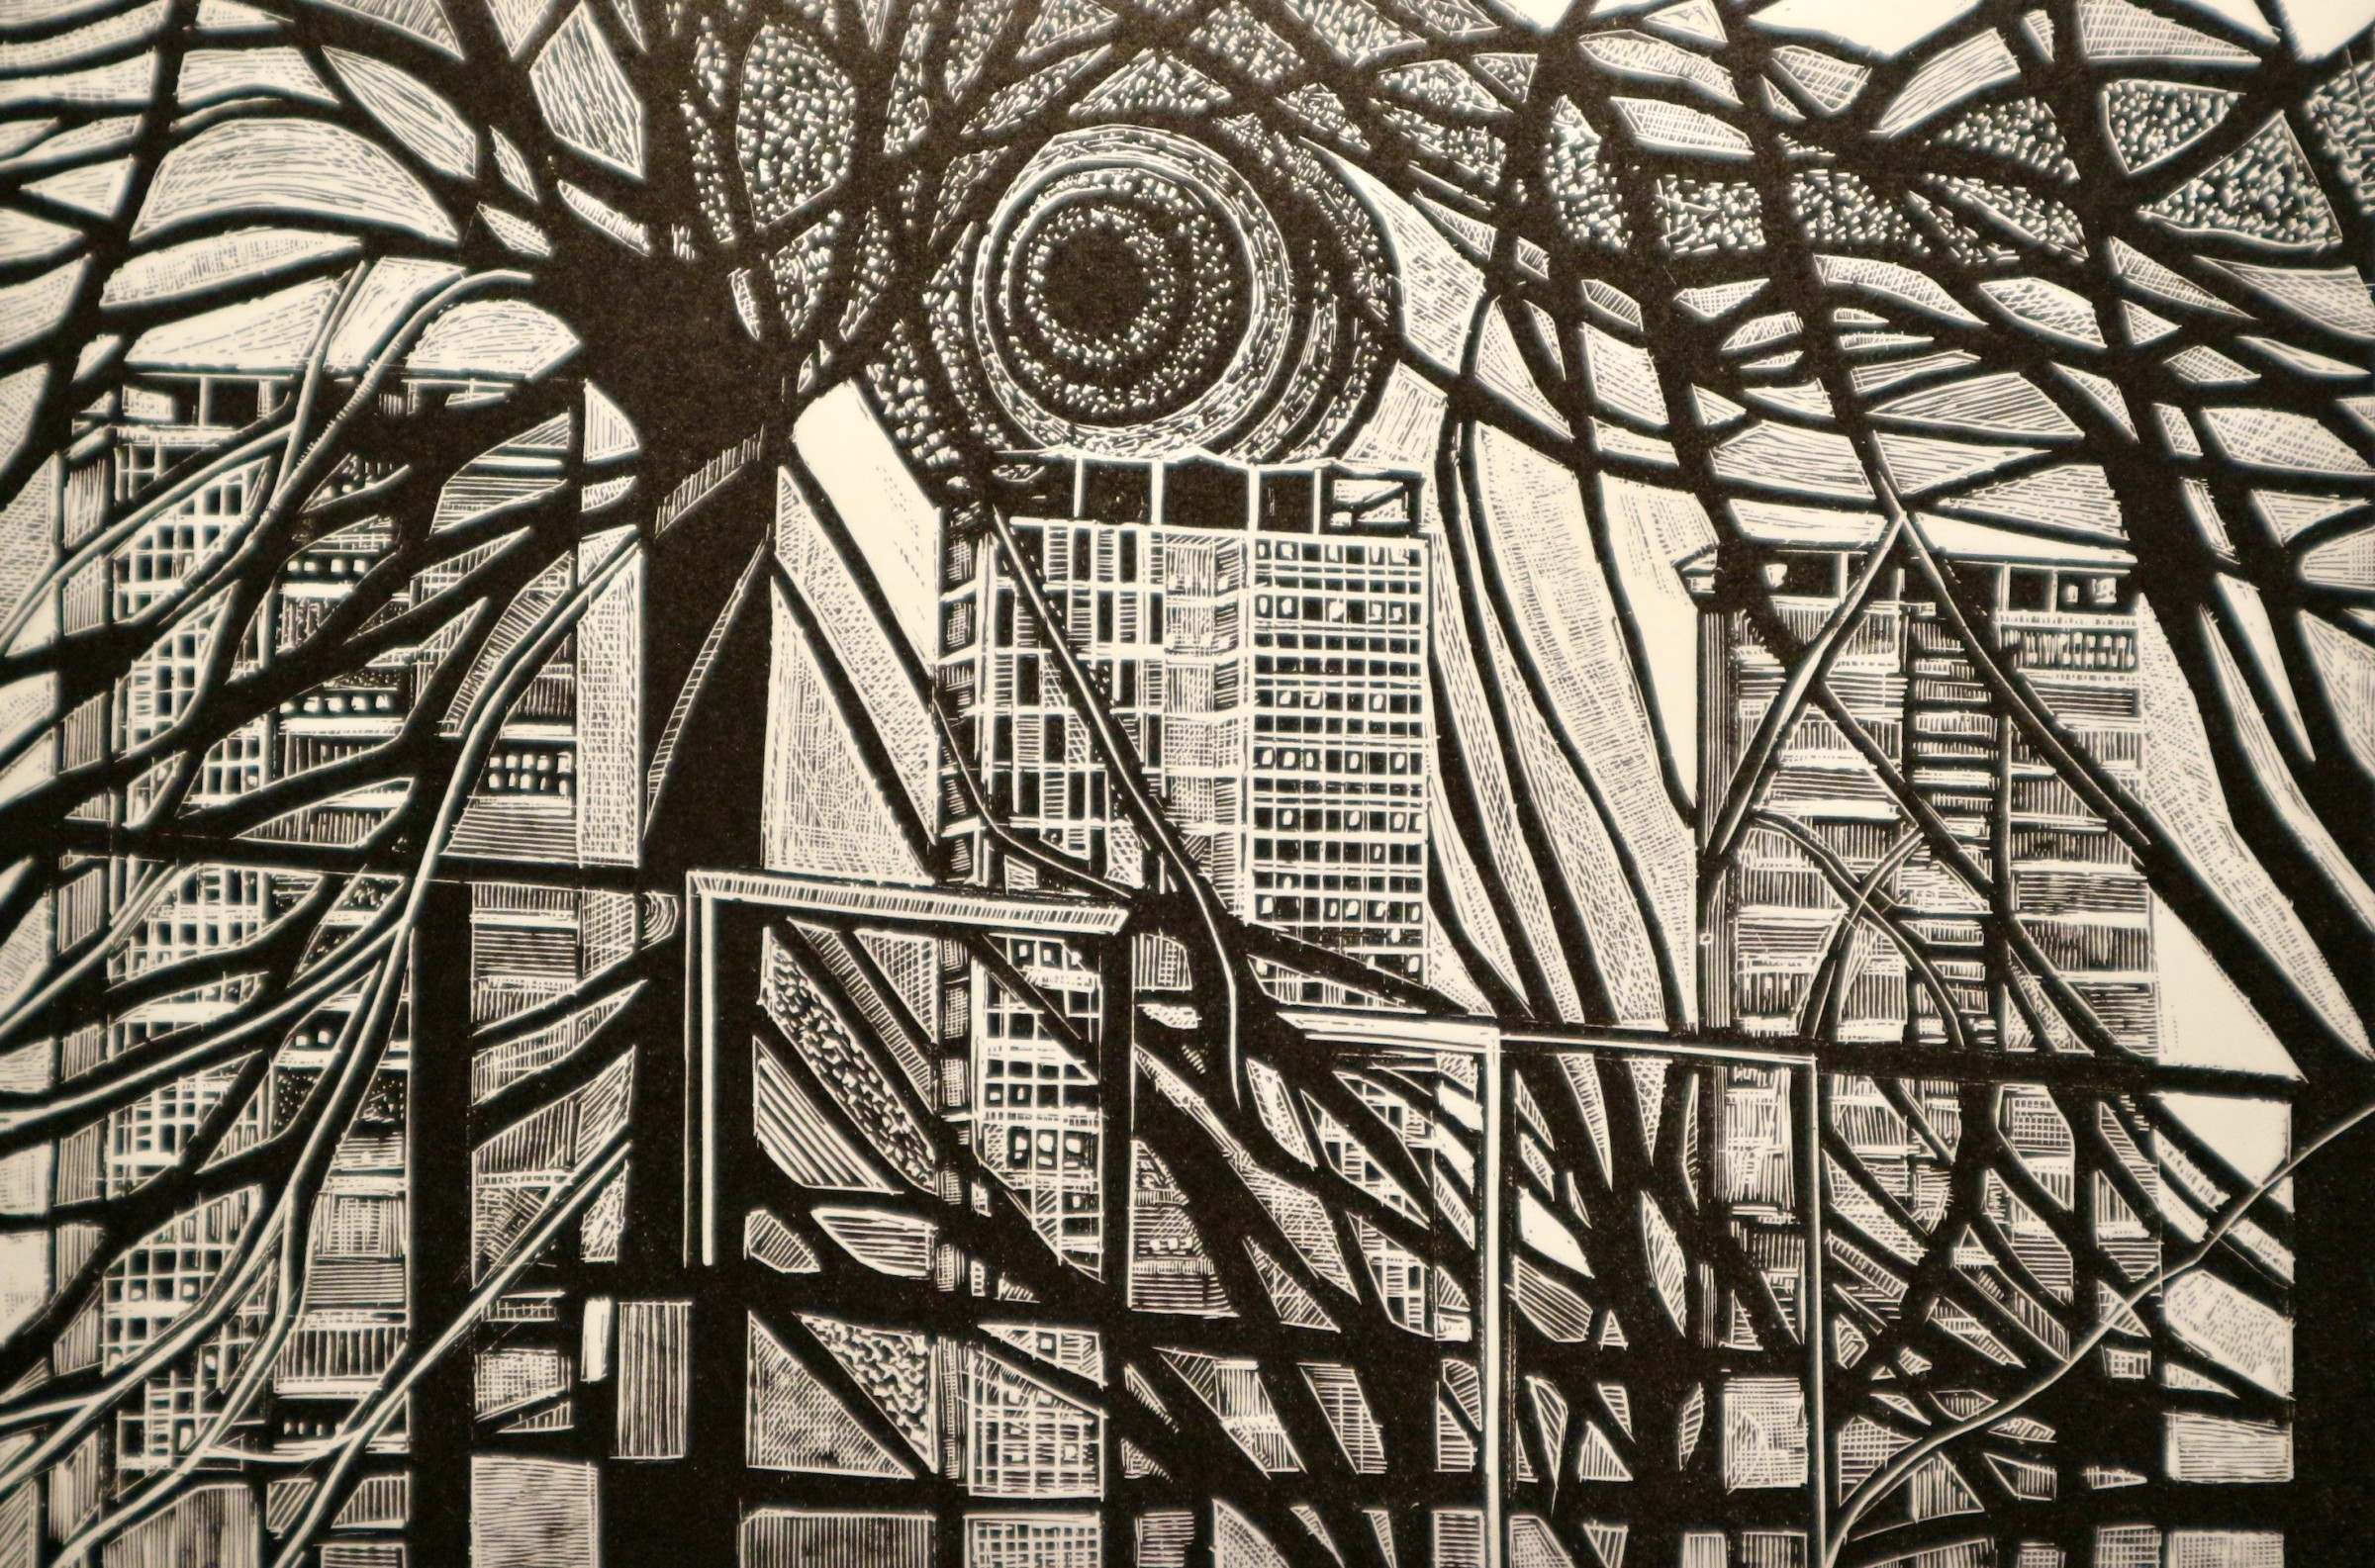 """<span class=""""link fancybox-details-link""""><a href=""""/exhibitions/11/works/image_standalone113/"""">View Detail Page</a></span><p>LOUISE HAYWARD RE<br /><br /></p><p><em>Memory of an Urban Landscape</em>, 2017</p><p>engraving</p><p>Inspired by Garrick Palmer RE</p><p></p><p>Part of the Print REbels Portfolio (and featured in the box set)</p><p></p><p>""""The organic, ambiguous landscapes of <b>Garrick Palmer RE (1933-)</b> exist as real places in time while swirling with elemental forces communicated through beautiful engraving.""""</p>"""